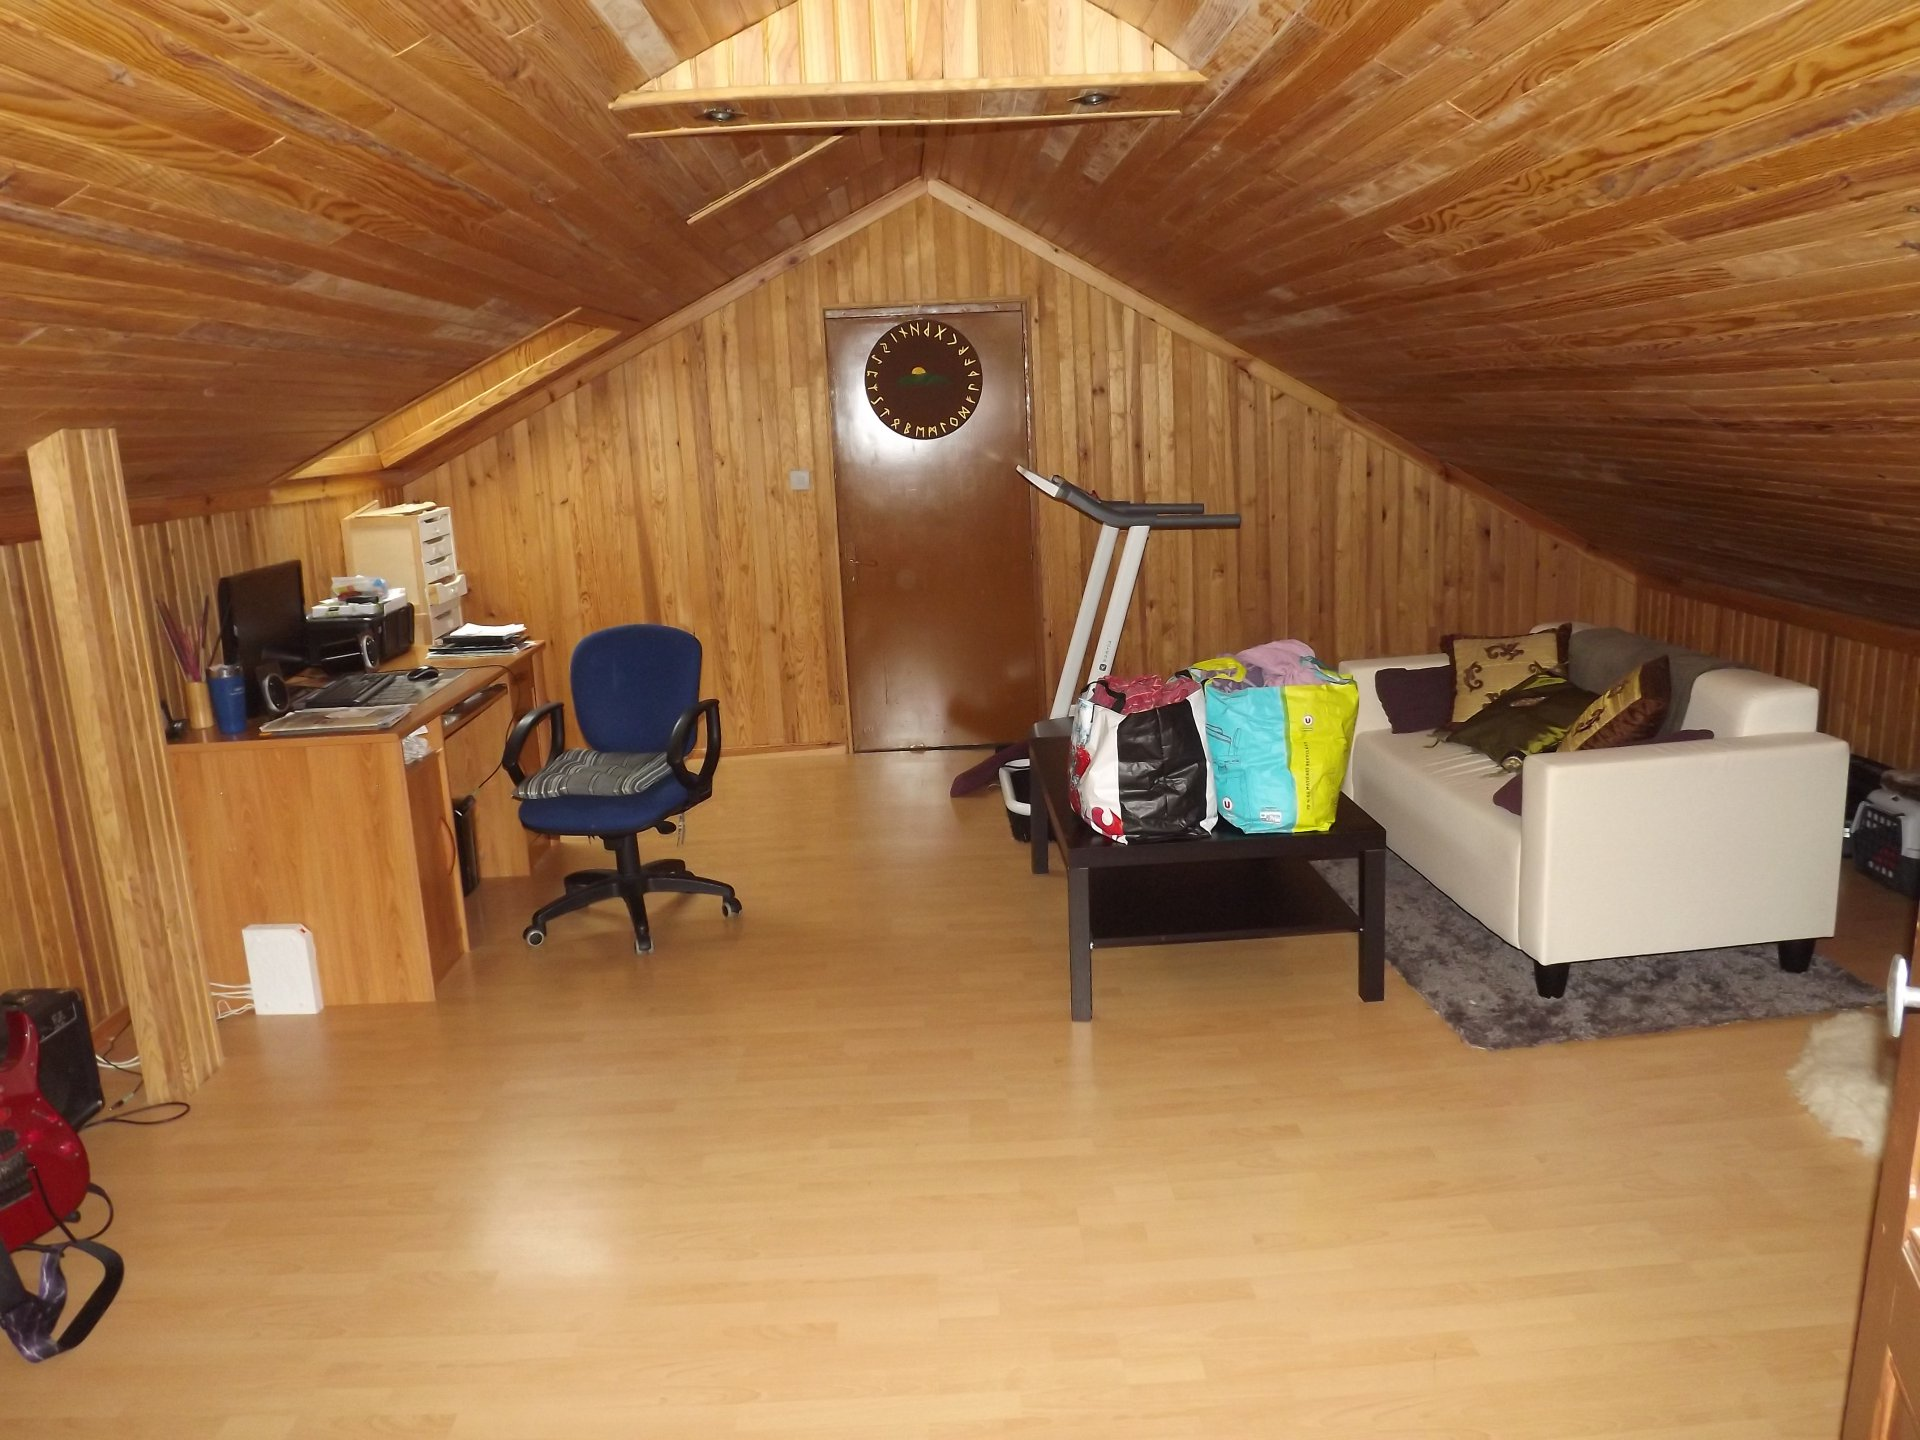 300sq.m Property including house and trading